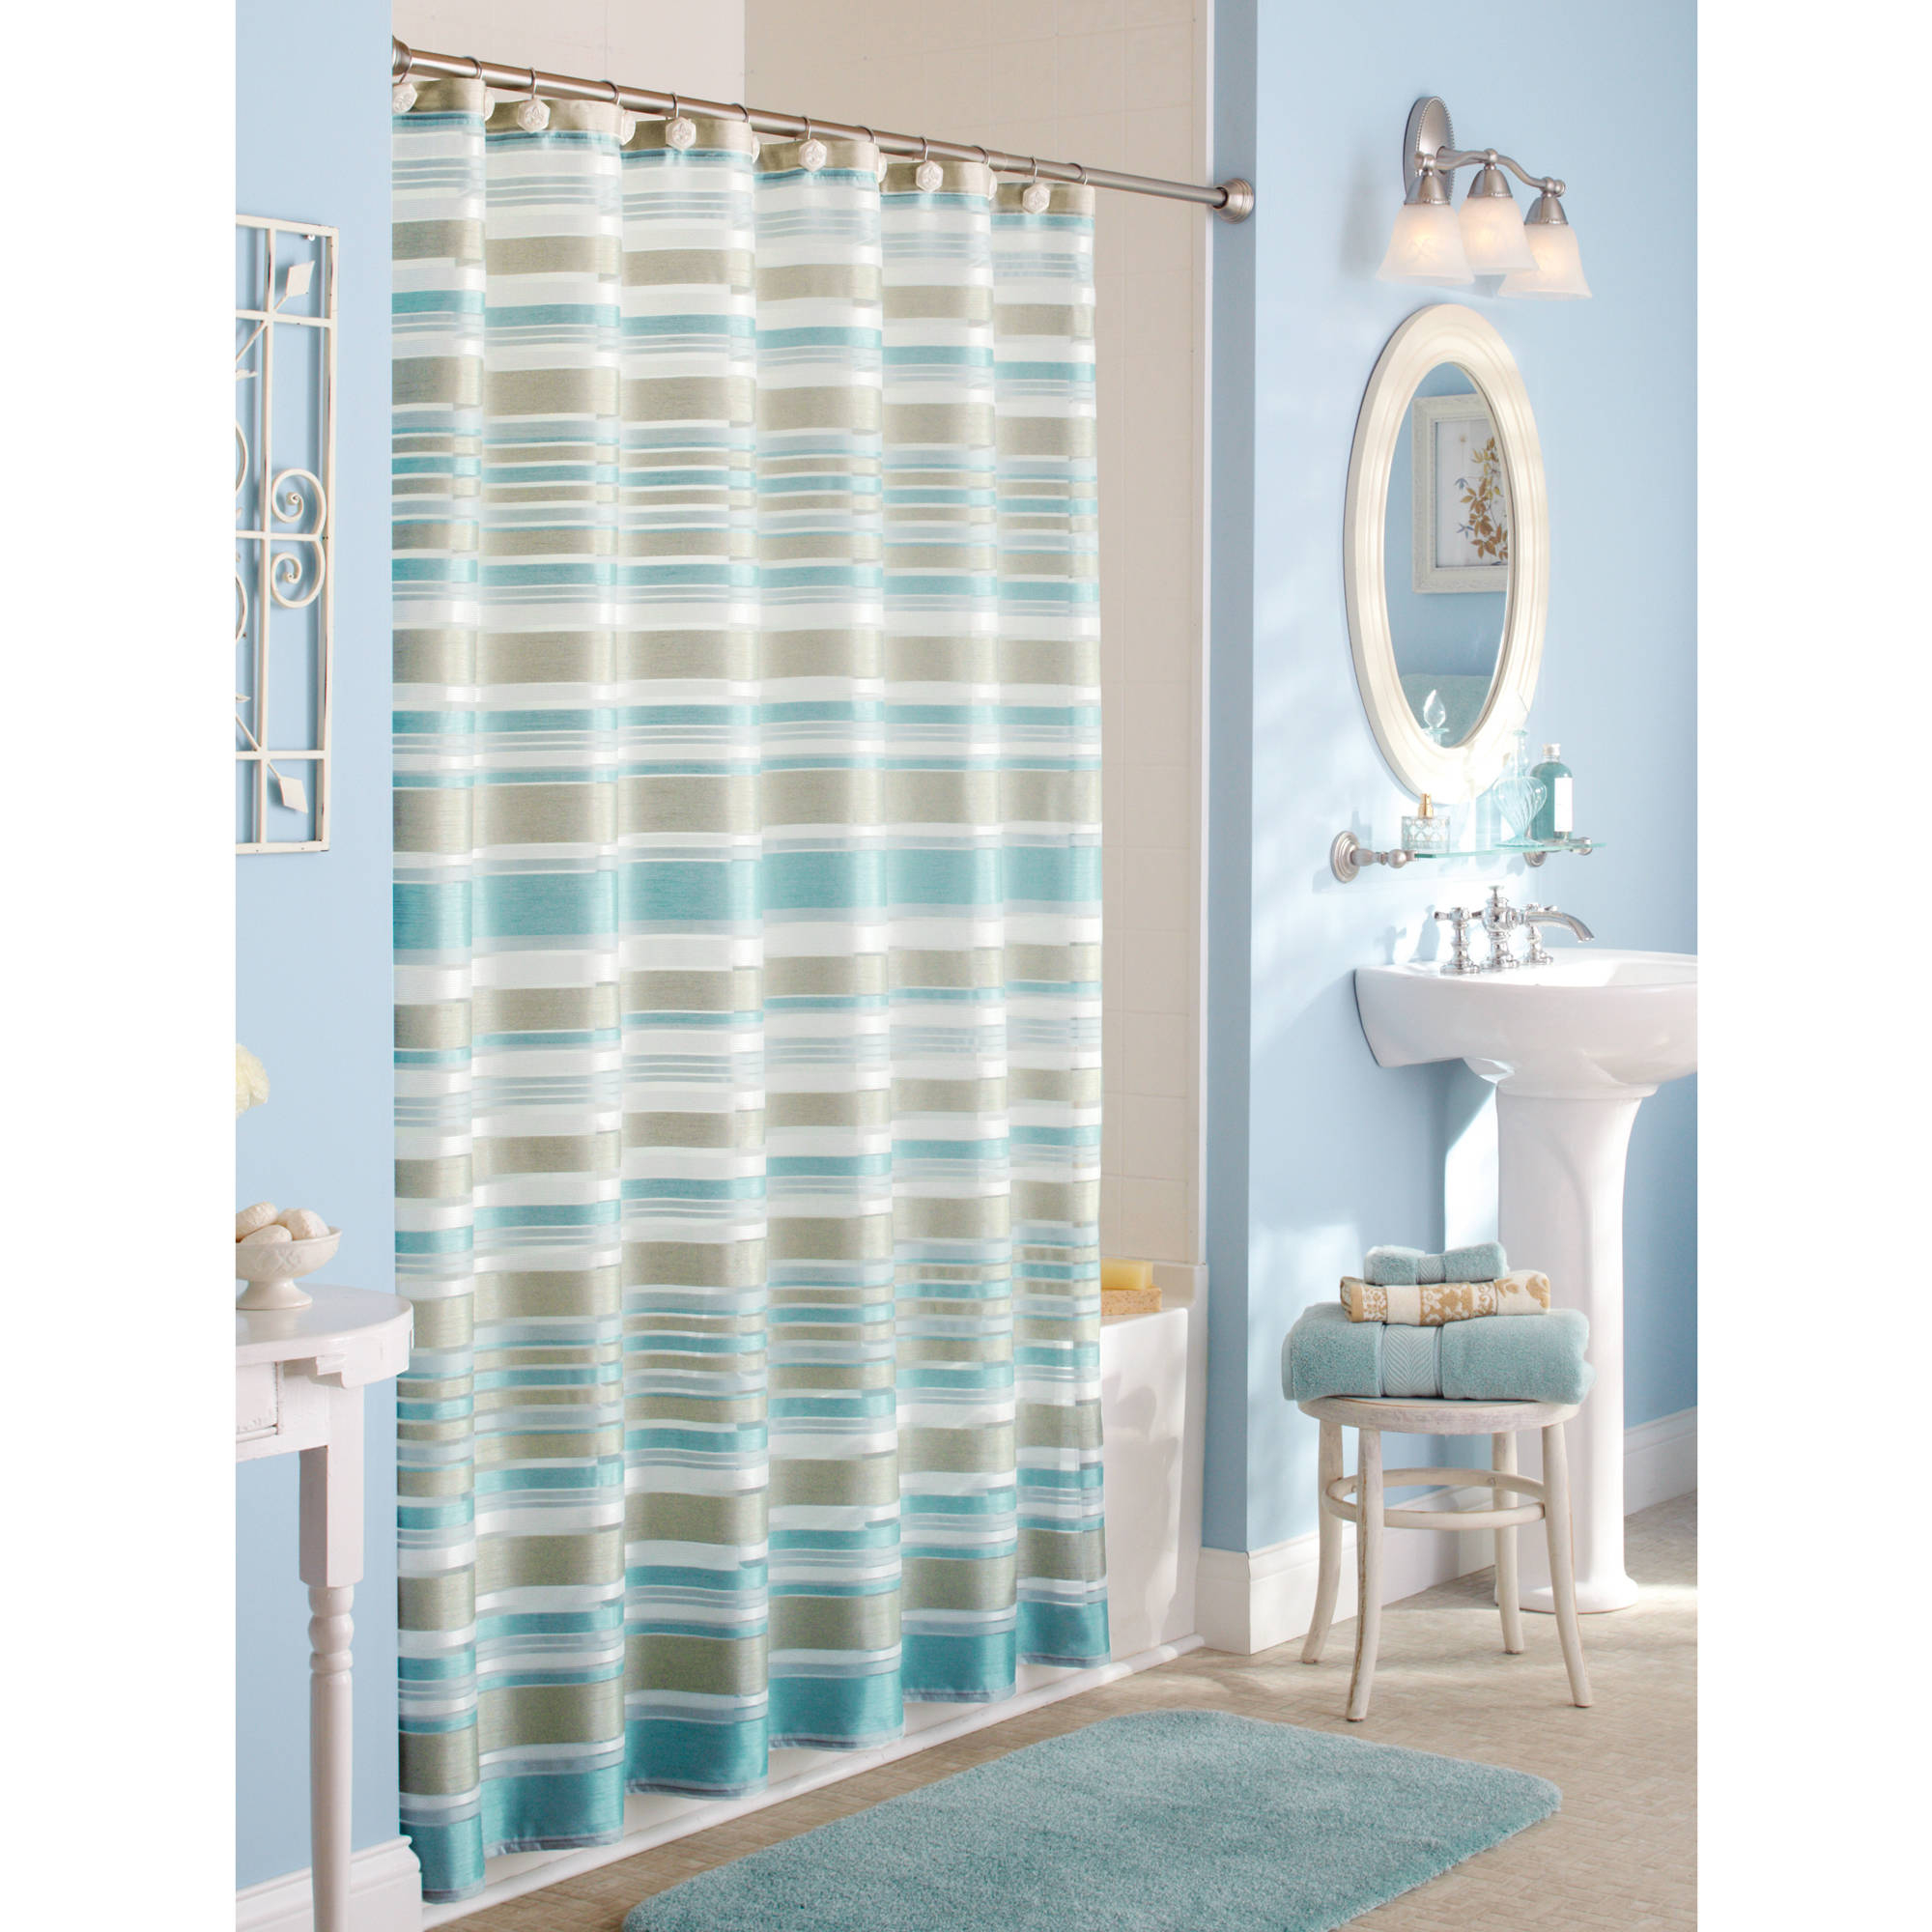 Mainstays Fabric Shower Curtain Walmart Within Dimensions 2000 X 2000